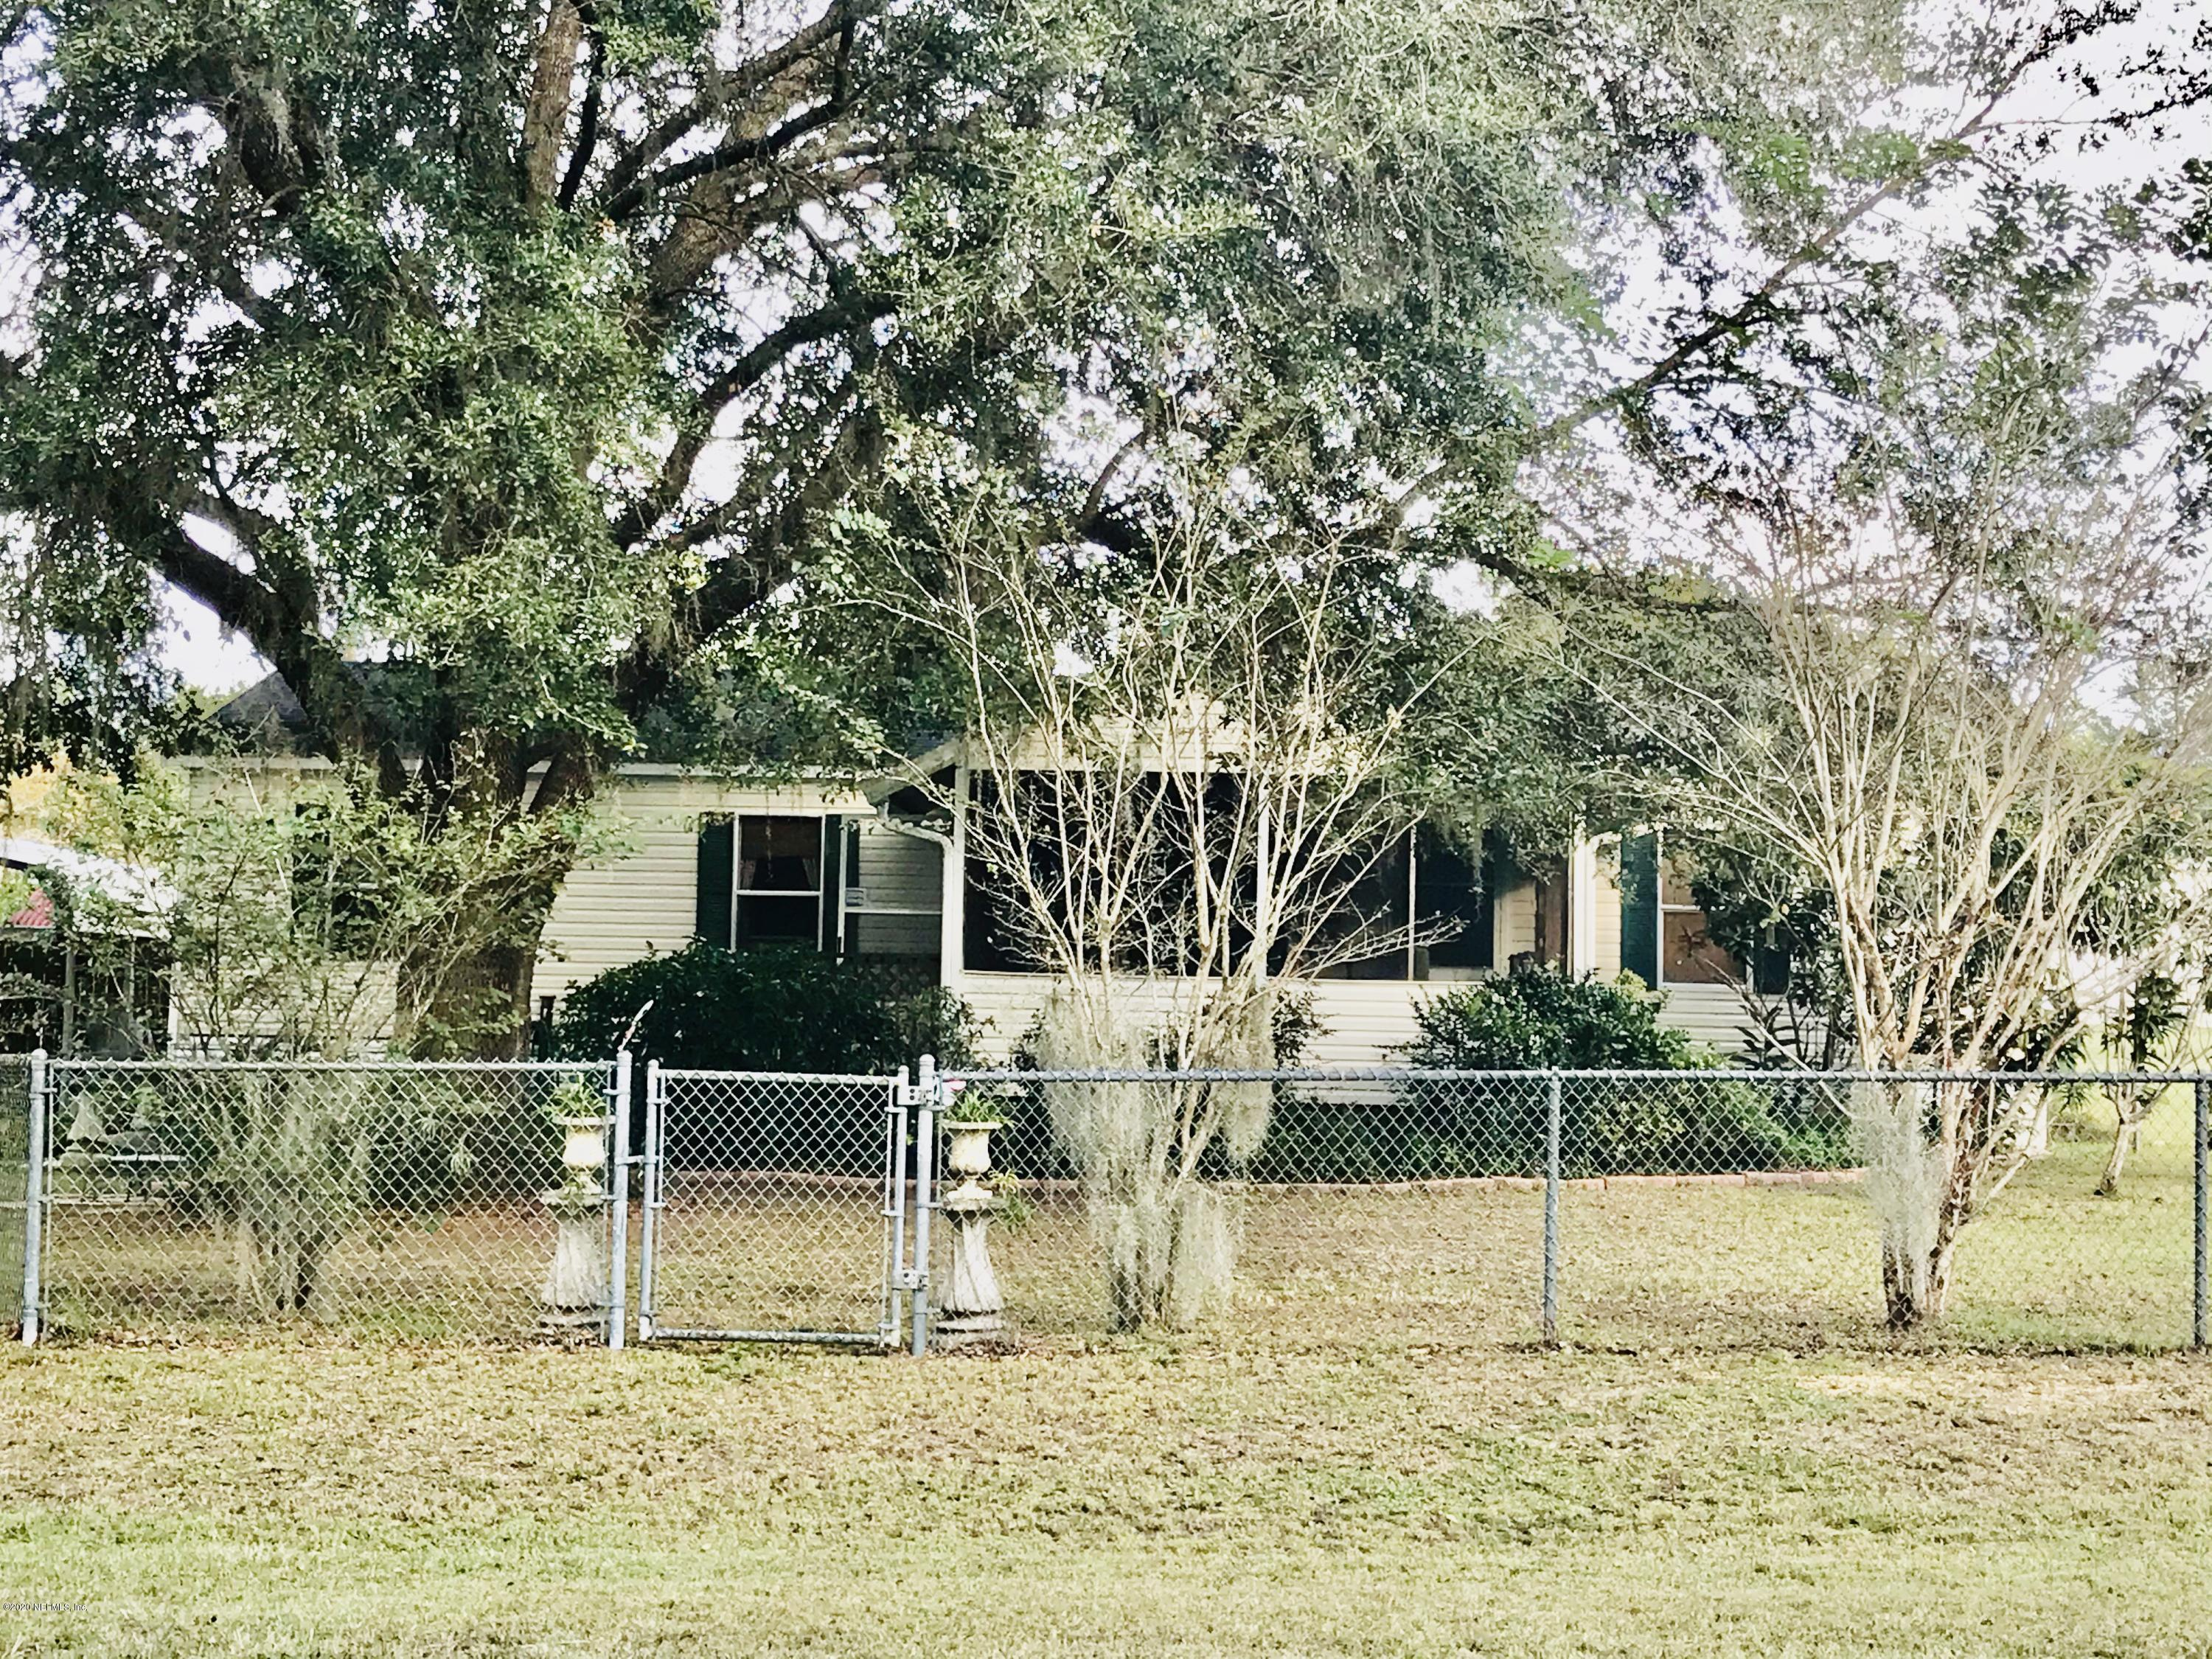 716 LENORE, INTERLACHEN, FLORIDA 32148, 3 Bedrooms Bedrooms, ,2 BathroomsBathrooms,Residential,For sale,LENORE,1082157